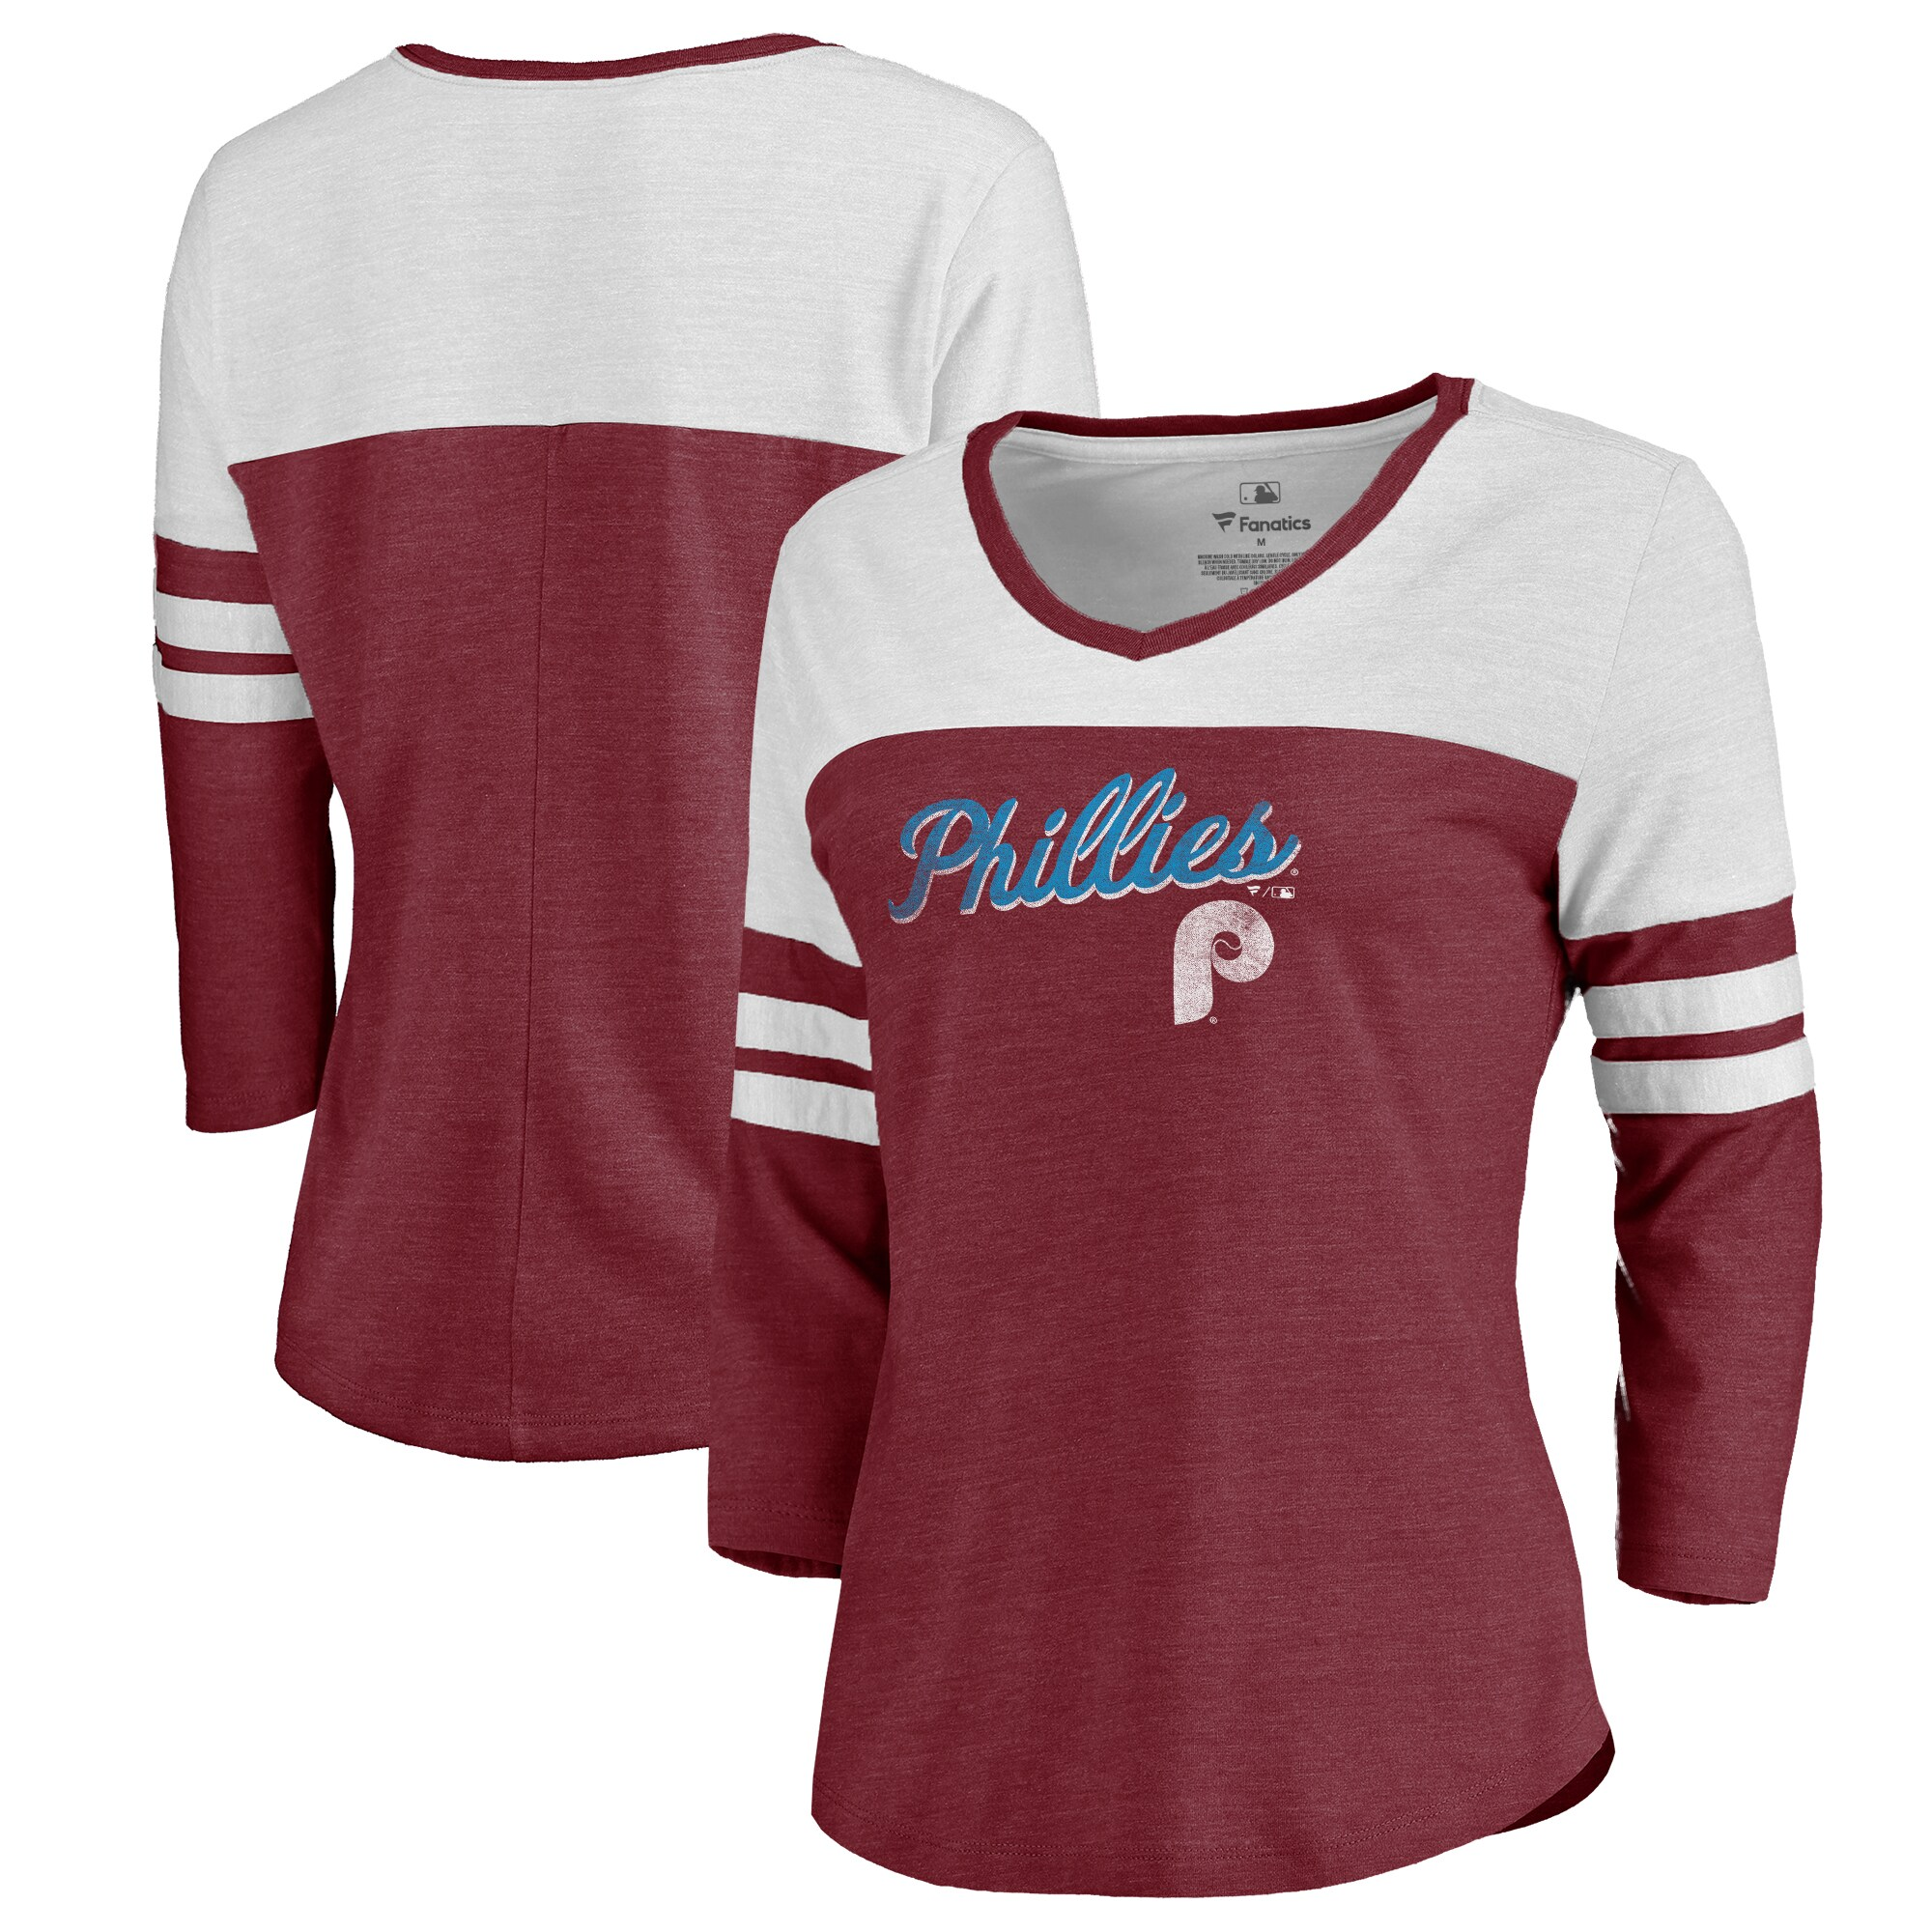 Fanatics Branded Philadelphia Phillies Women's Garnet Rising Script Color Block 3/4 Sleeve Tri-Blend T-Shirt